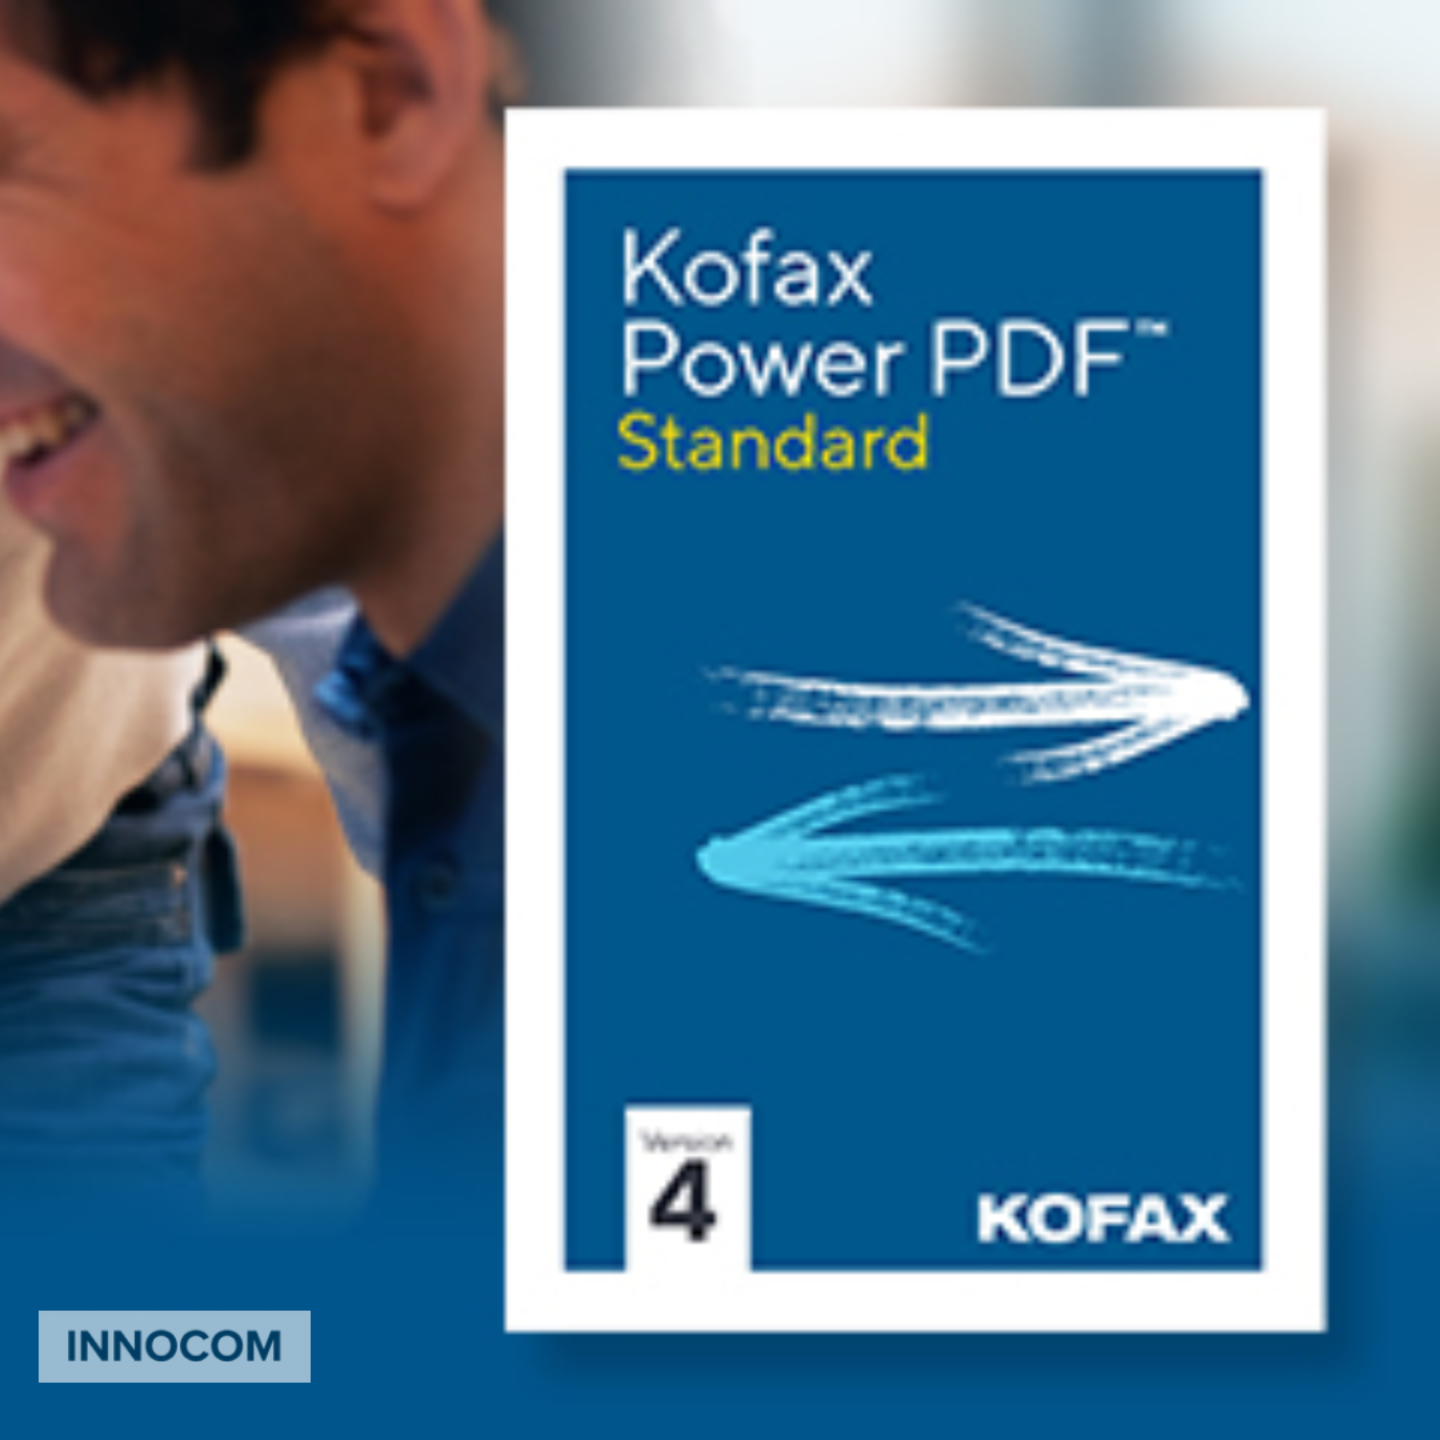 Kofax Power PDF 4.0 Standard-Box